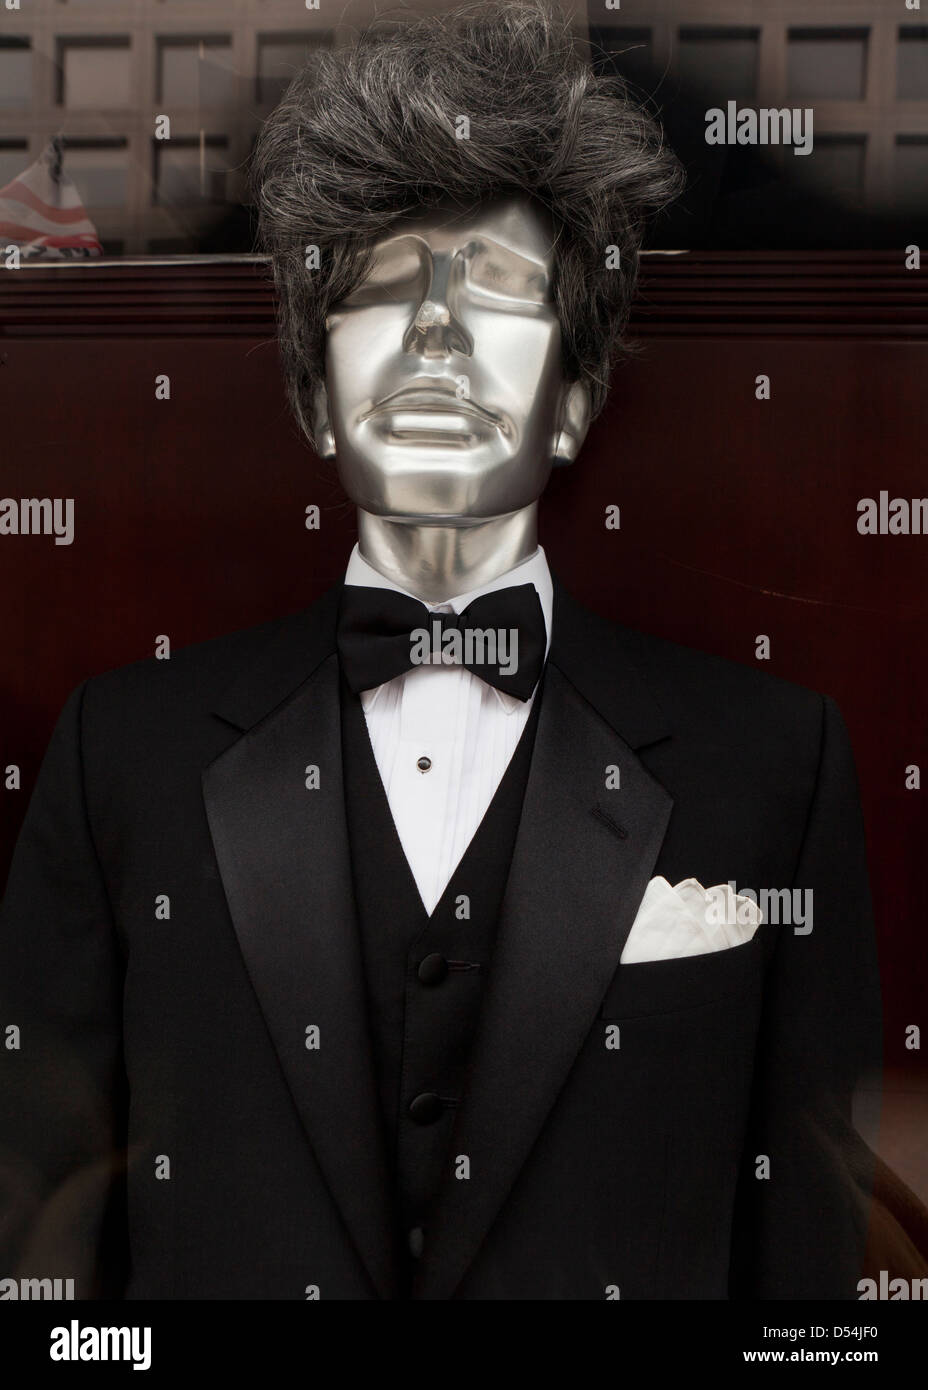 Mannequin dressed in a tuxedo - Stock Image